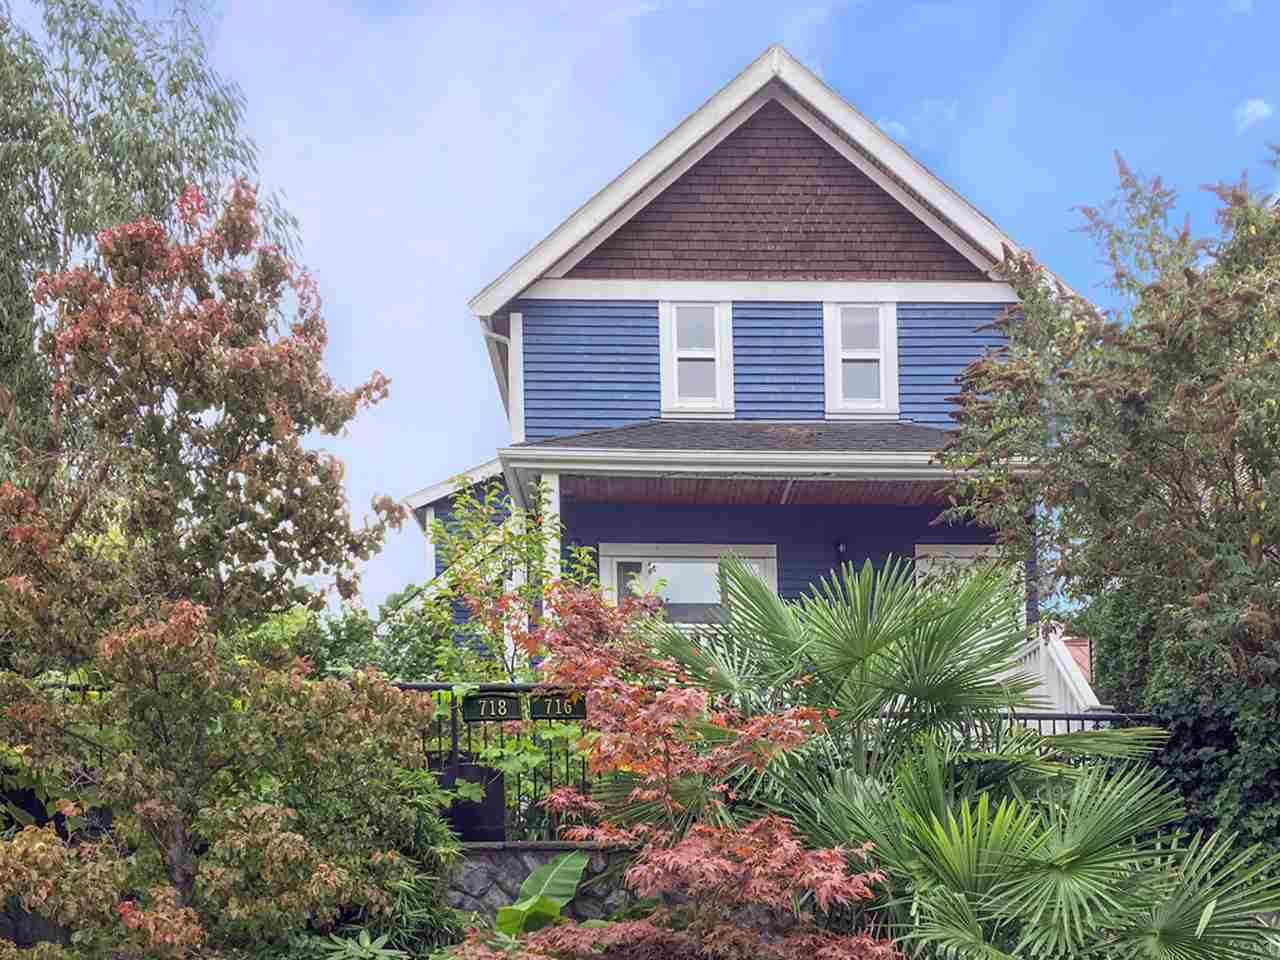 Main Photo: 716 UNION Street in Vancouver: Mount Pleasant VE House 1/2 Duplex for sale (Vancouver East)  : MLS®# R2218146